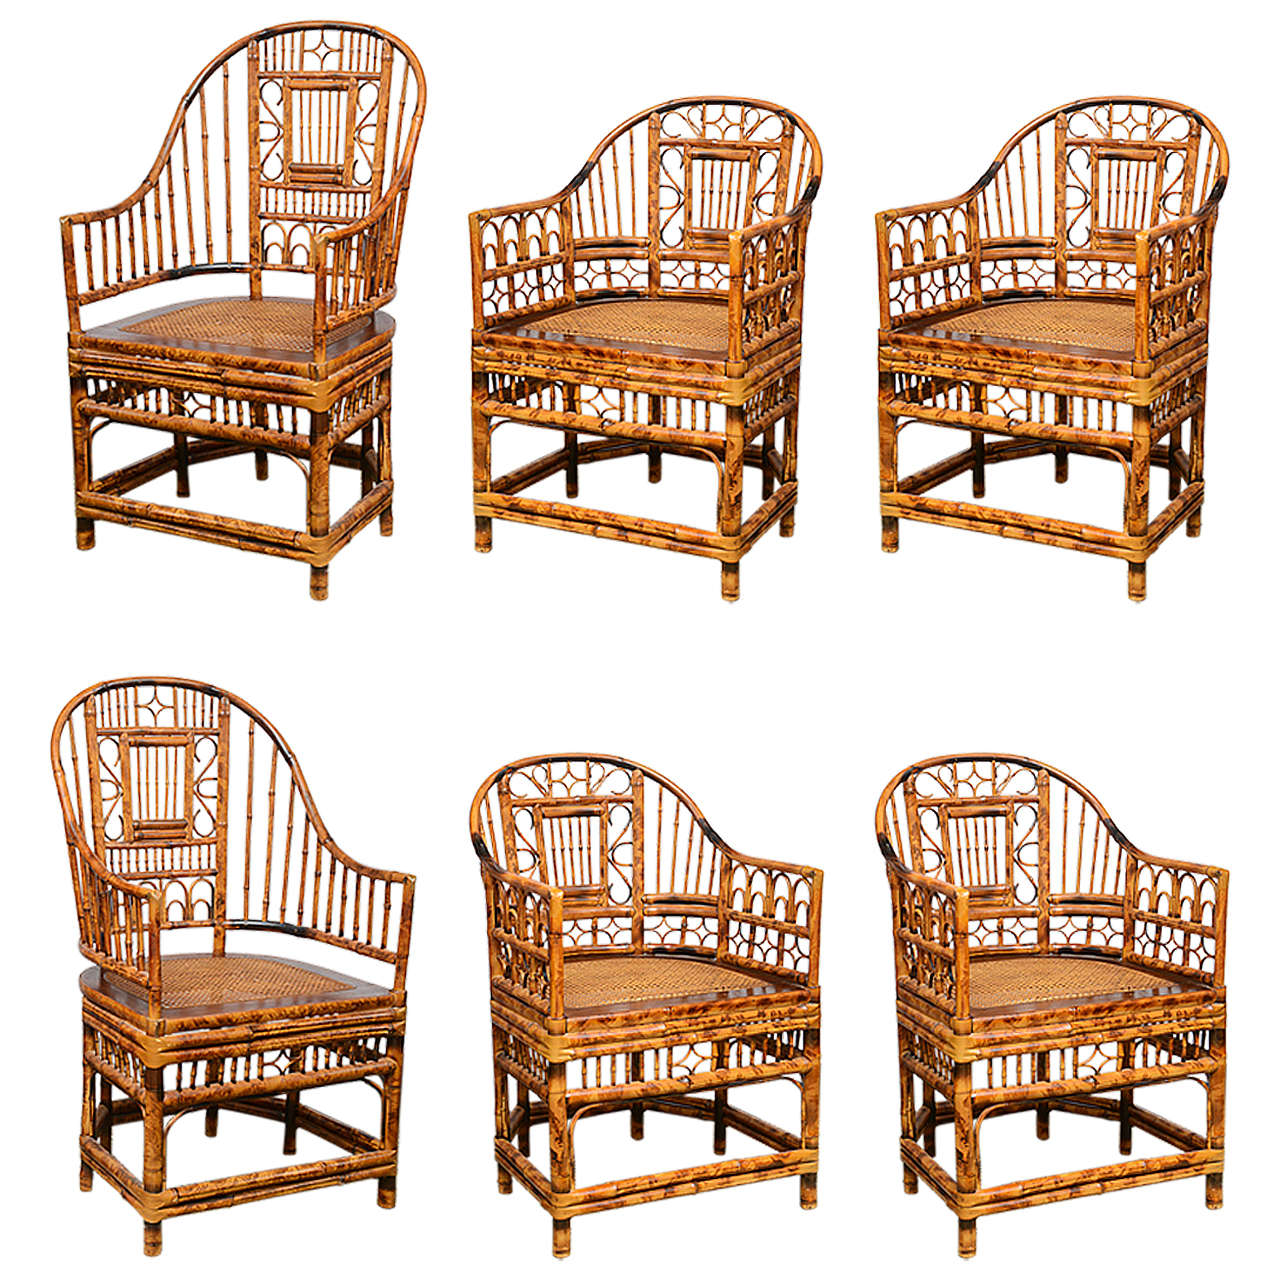 chinese chippendale chairs revolving chair ikea superb set of four bamboo vintage